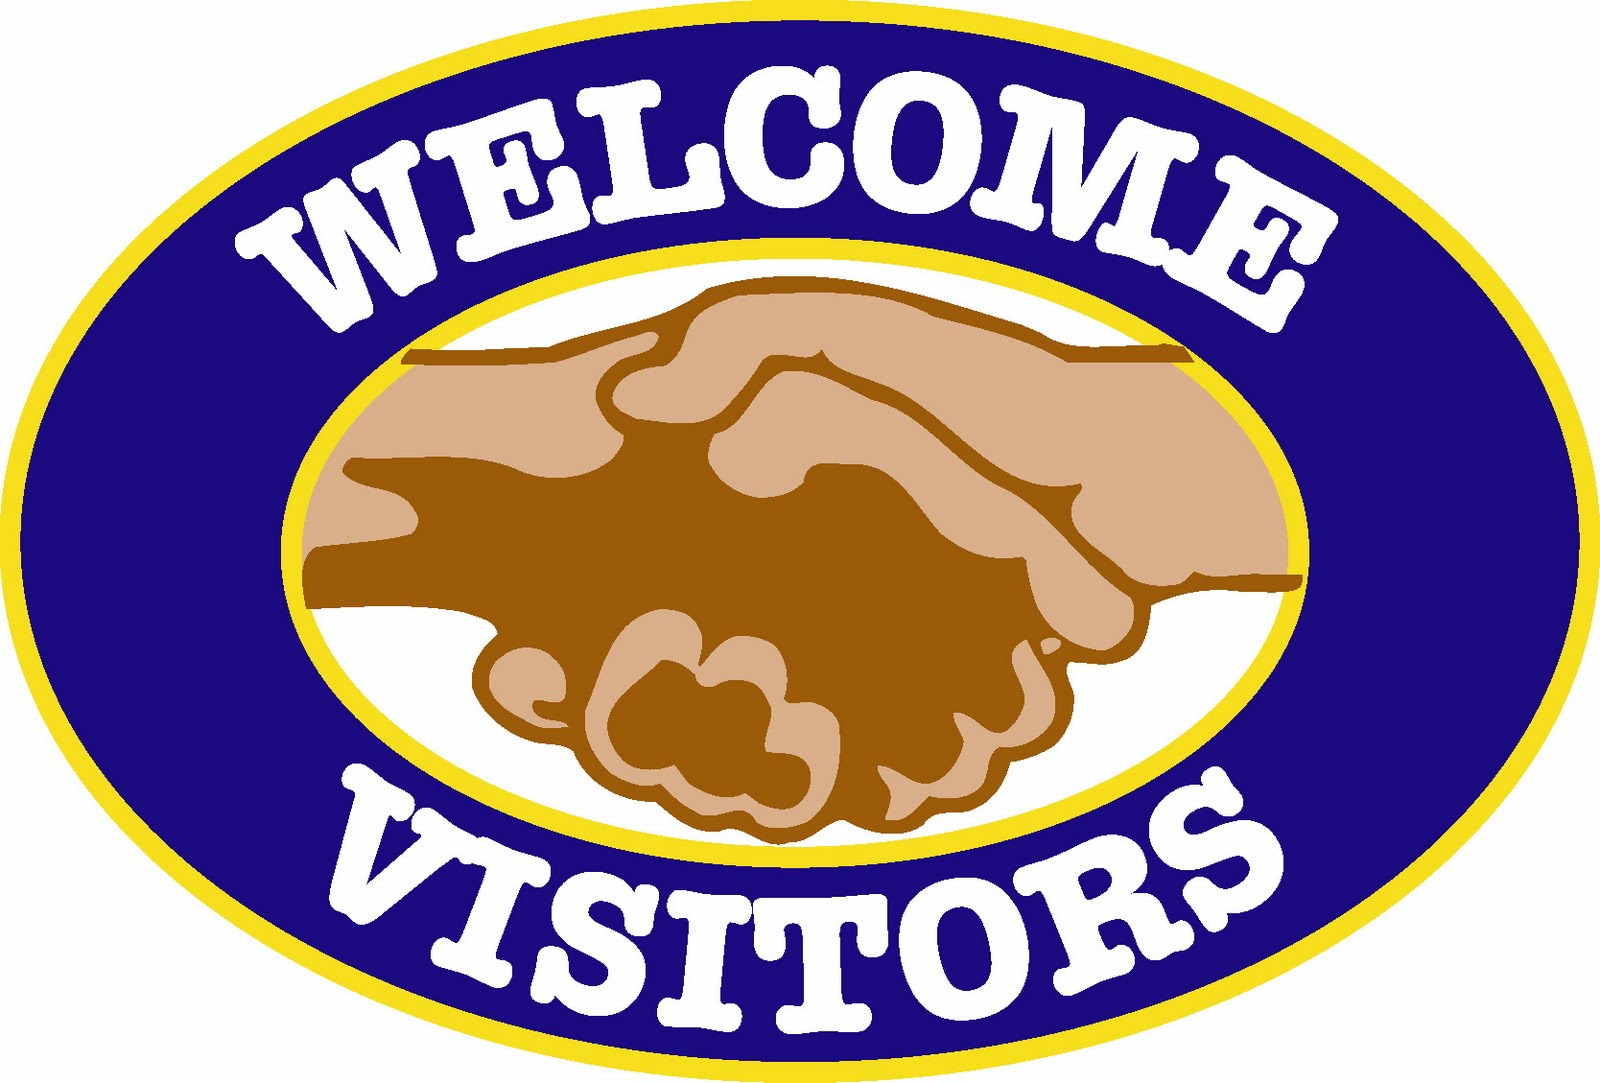 church clipart welcome visitors visitor clip greeters worship announcements october united clipartpanda cliparts knoxville methodist iowa library website powerpoint vtb